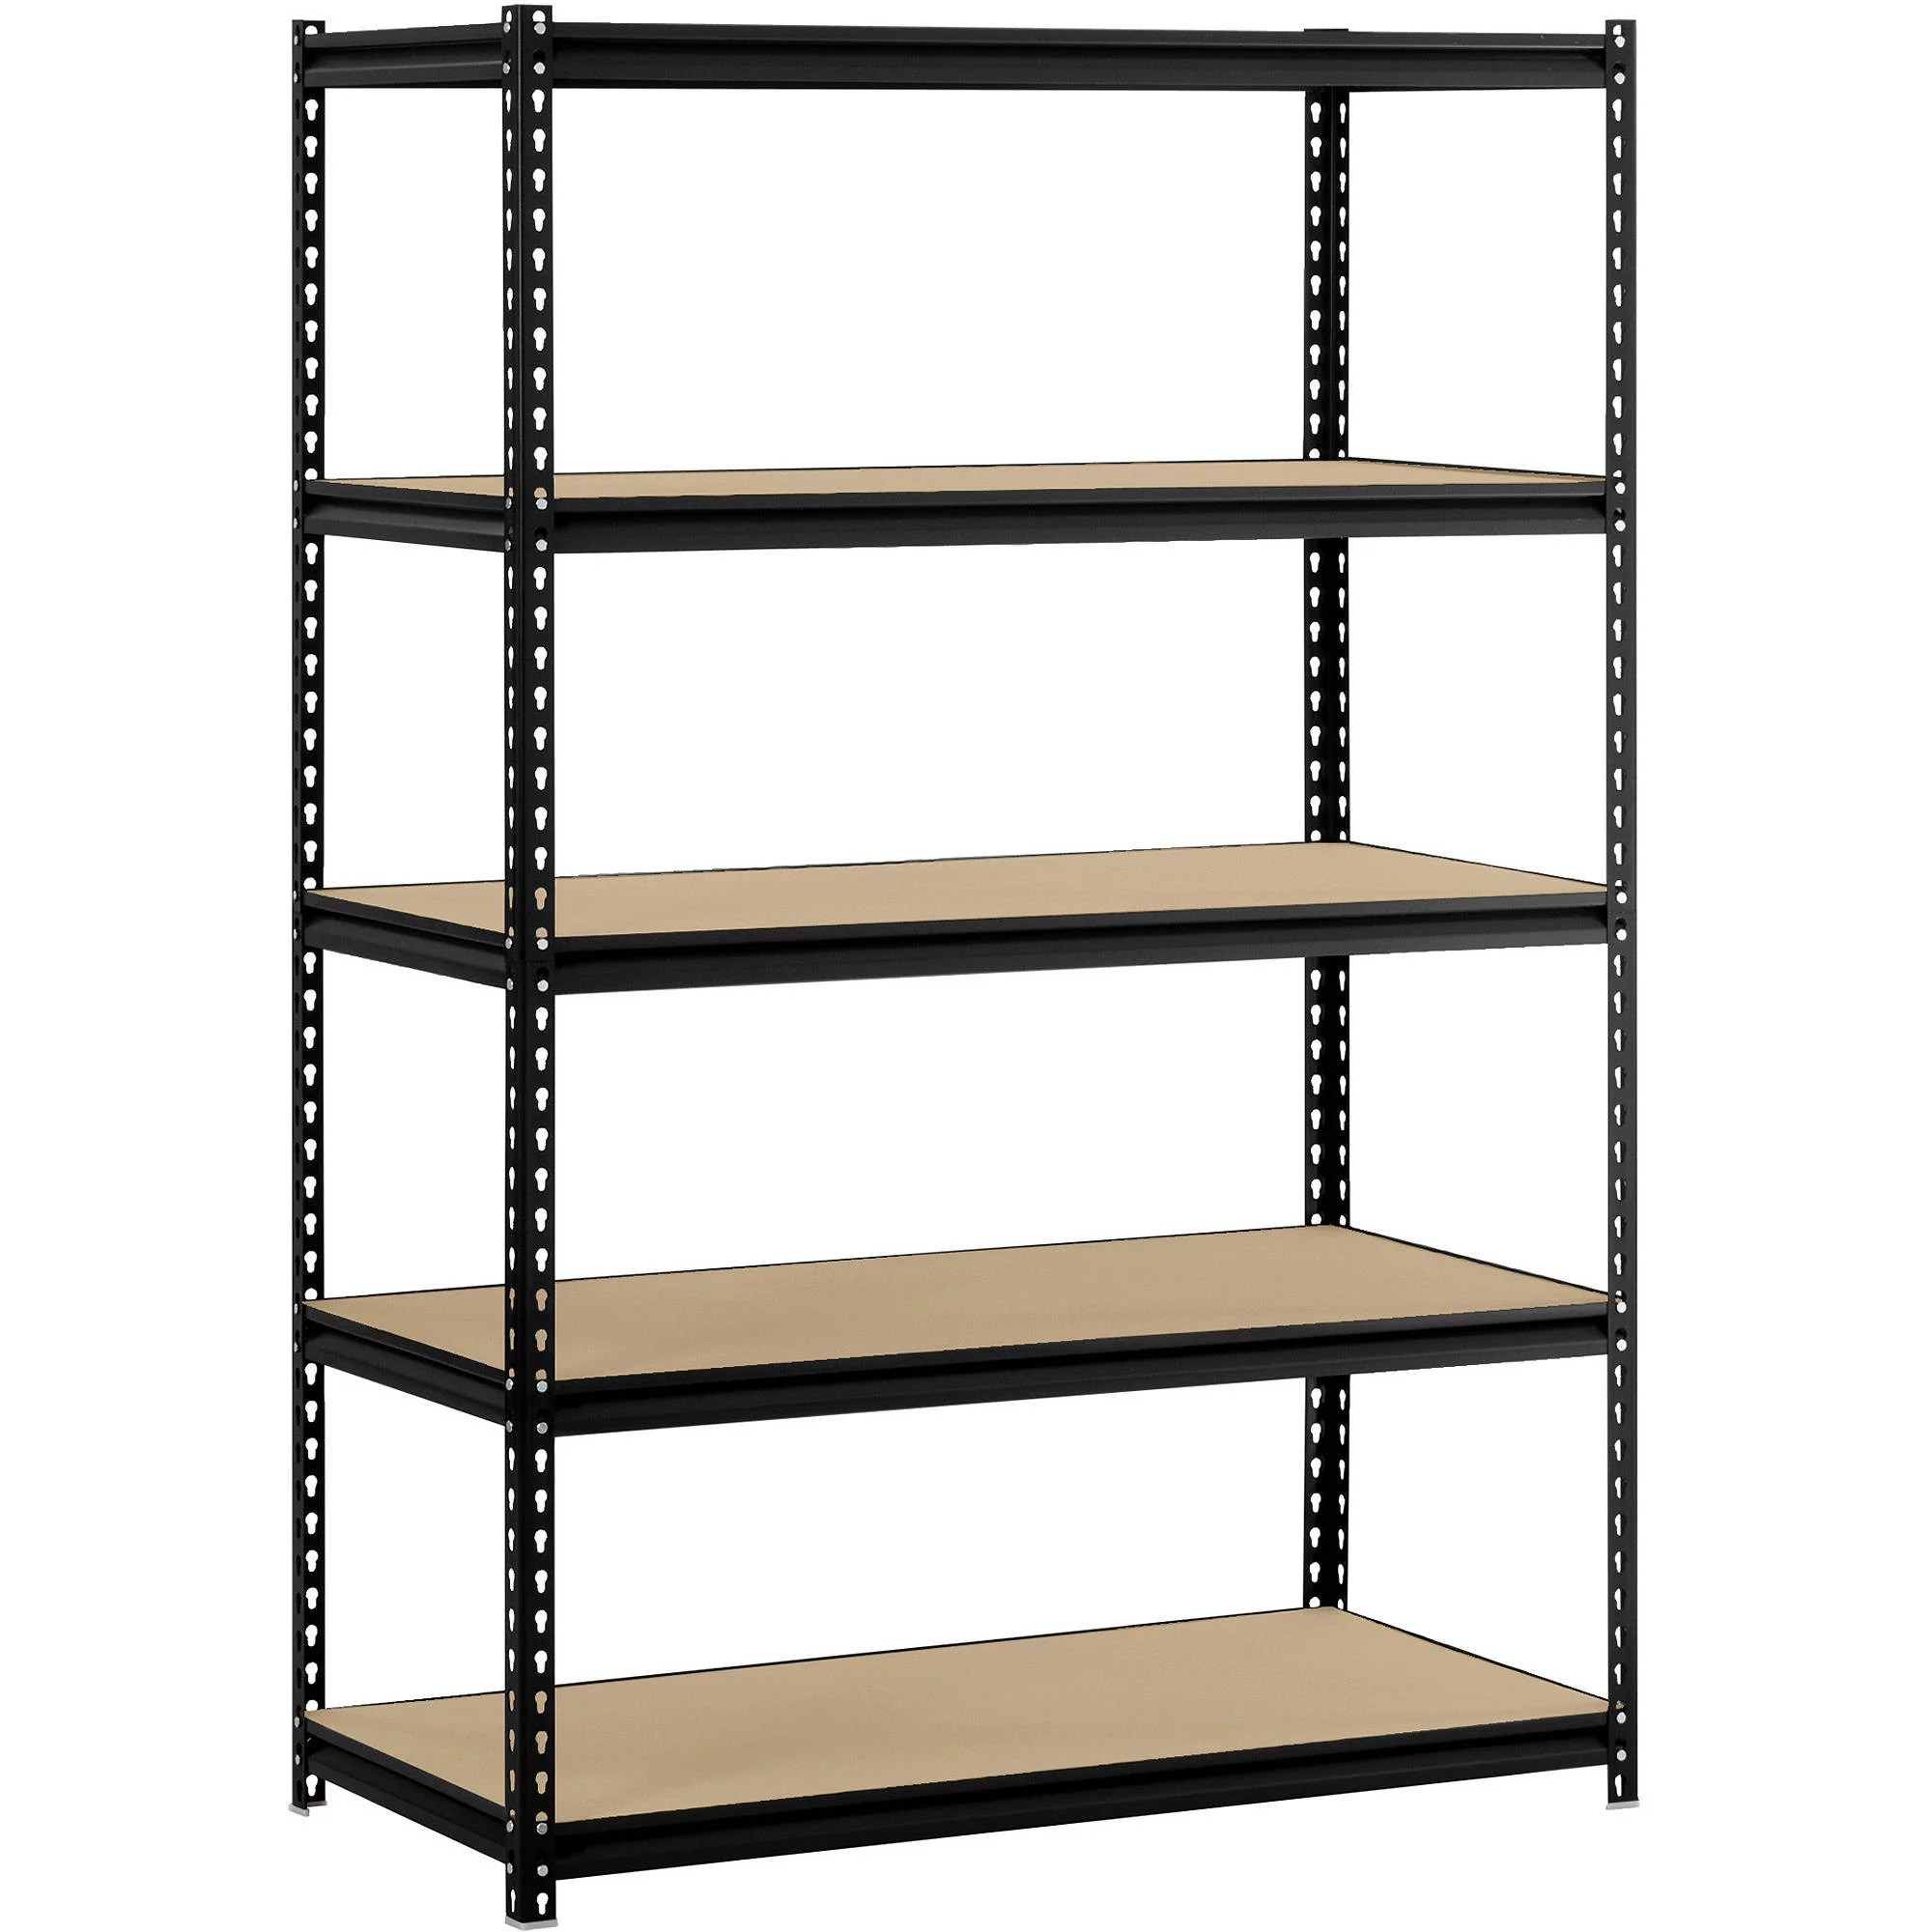 Storage Racks Muscle Rack 48